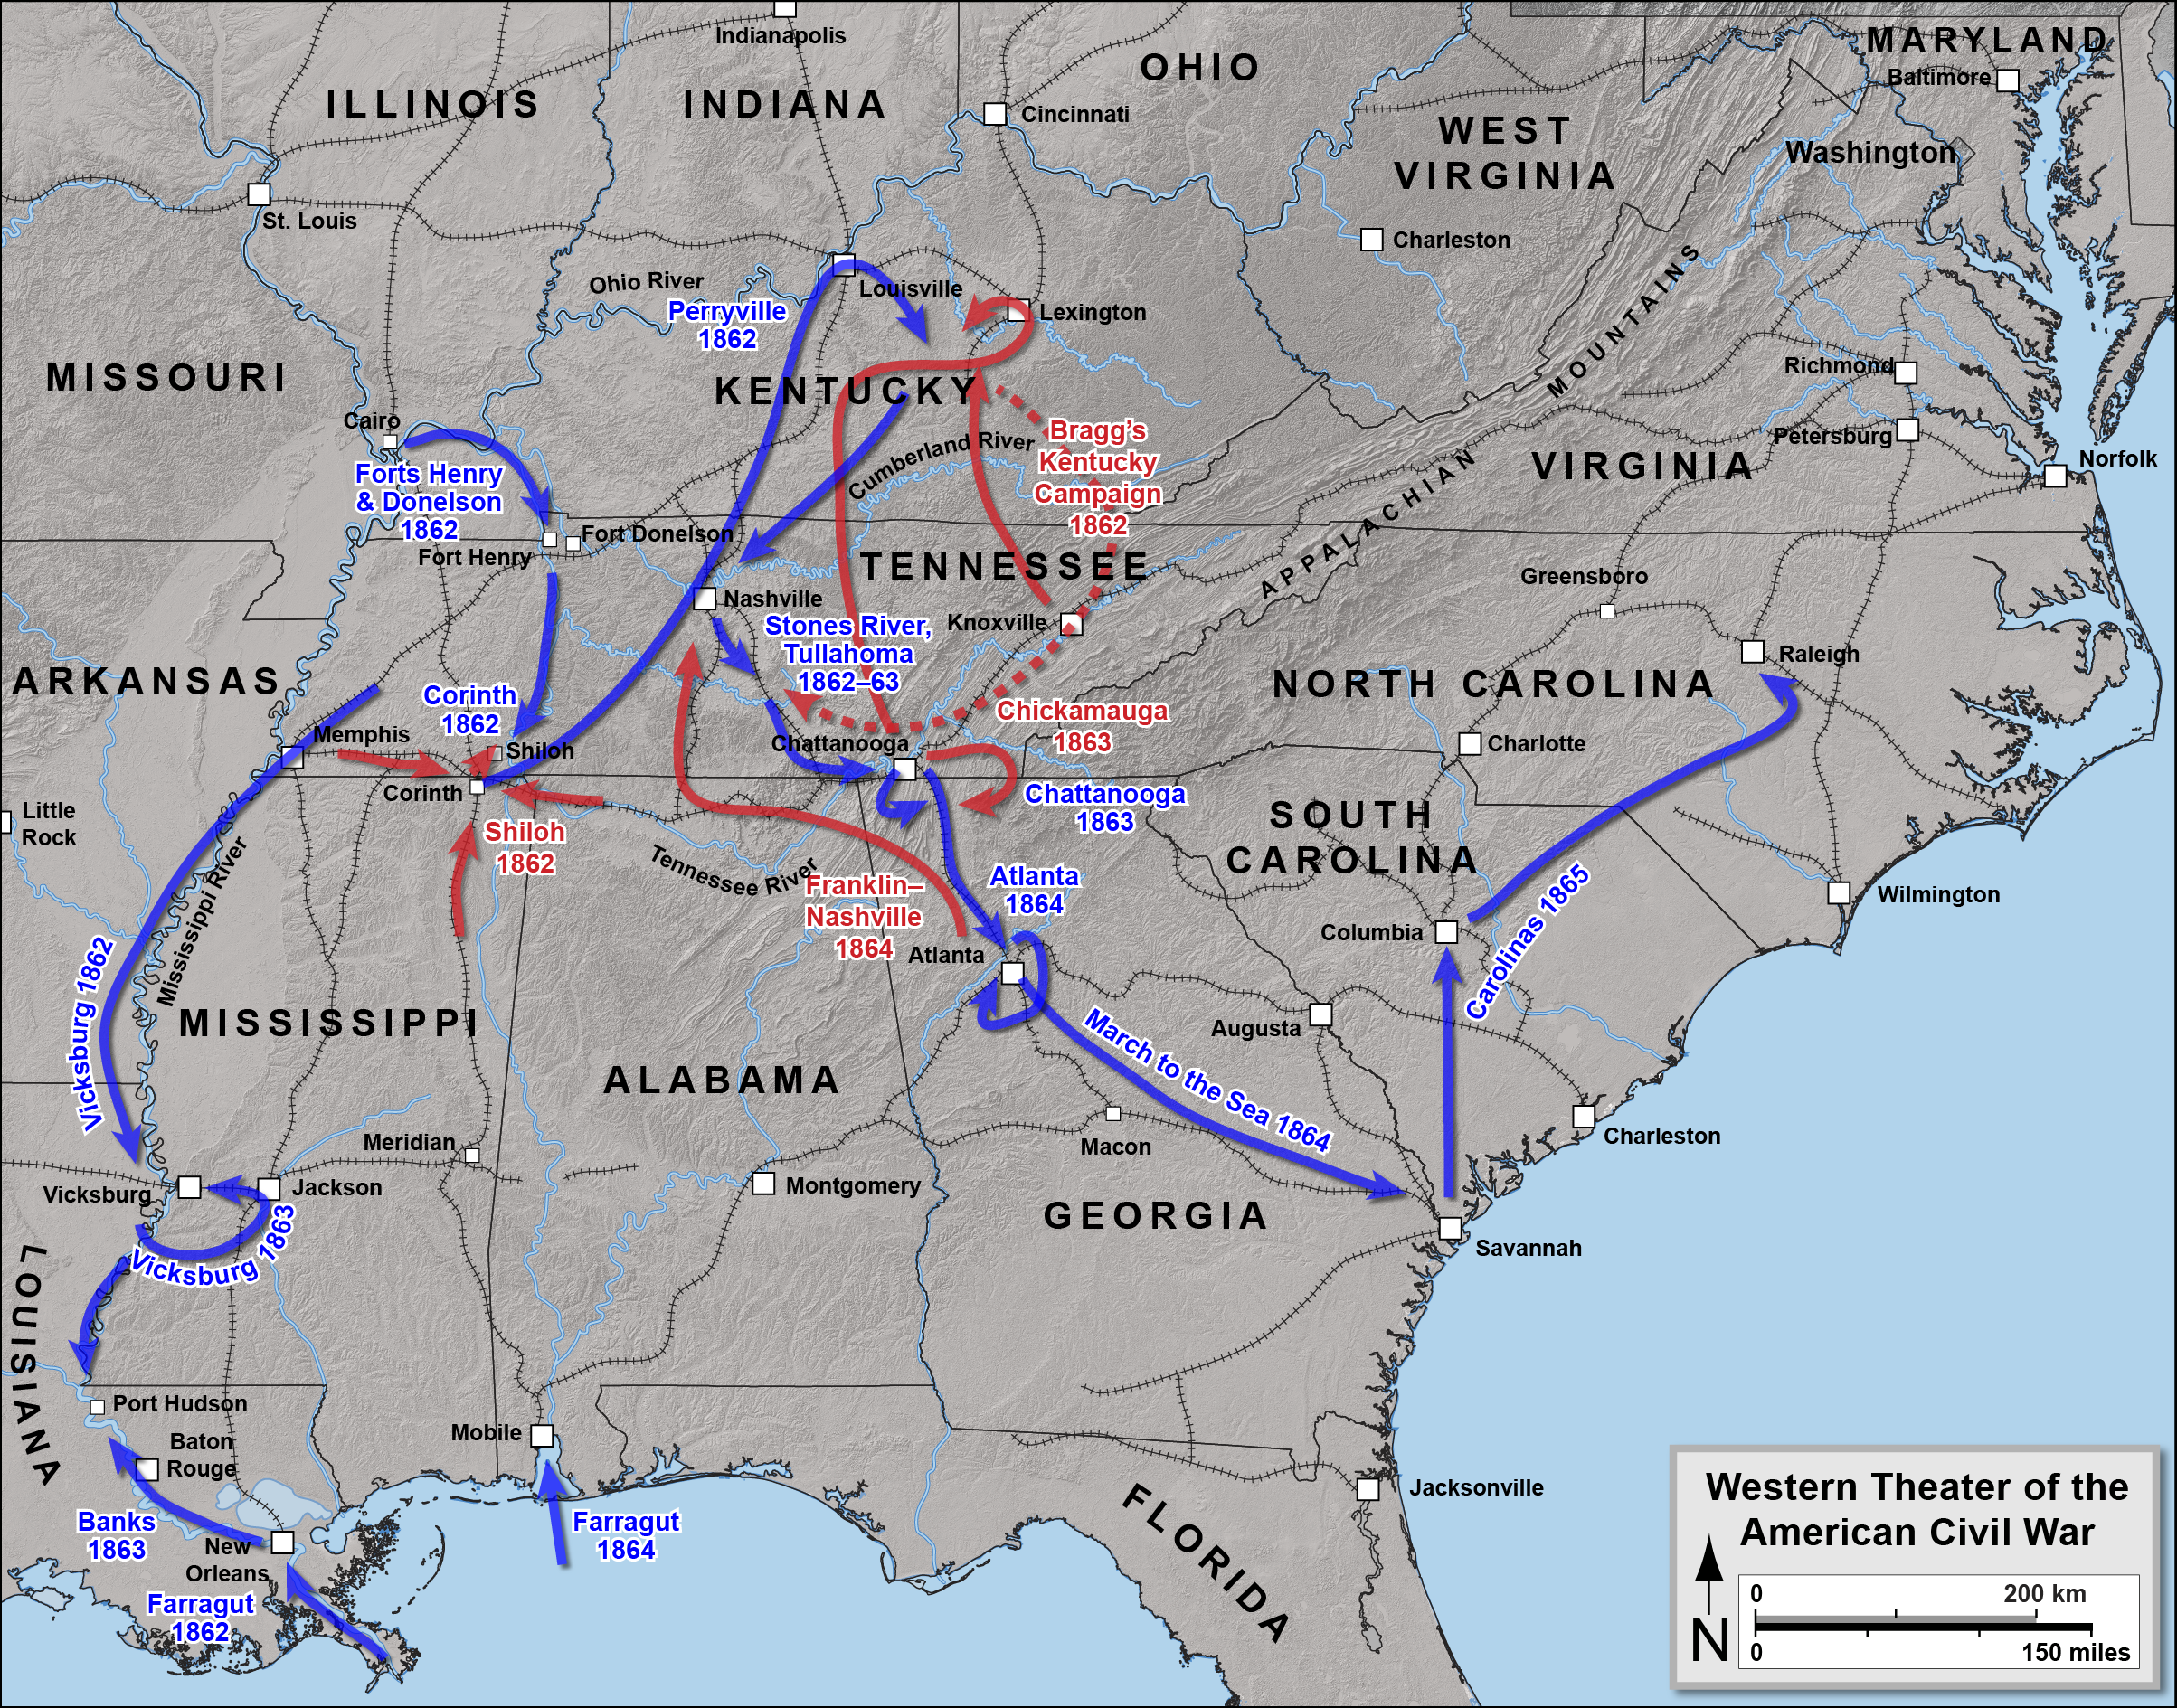 the us army 1861 map civil war western theater